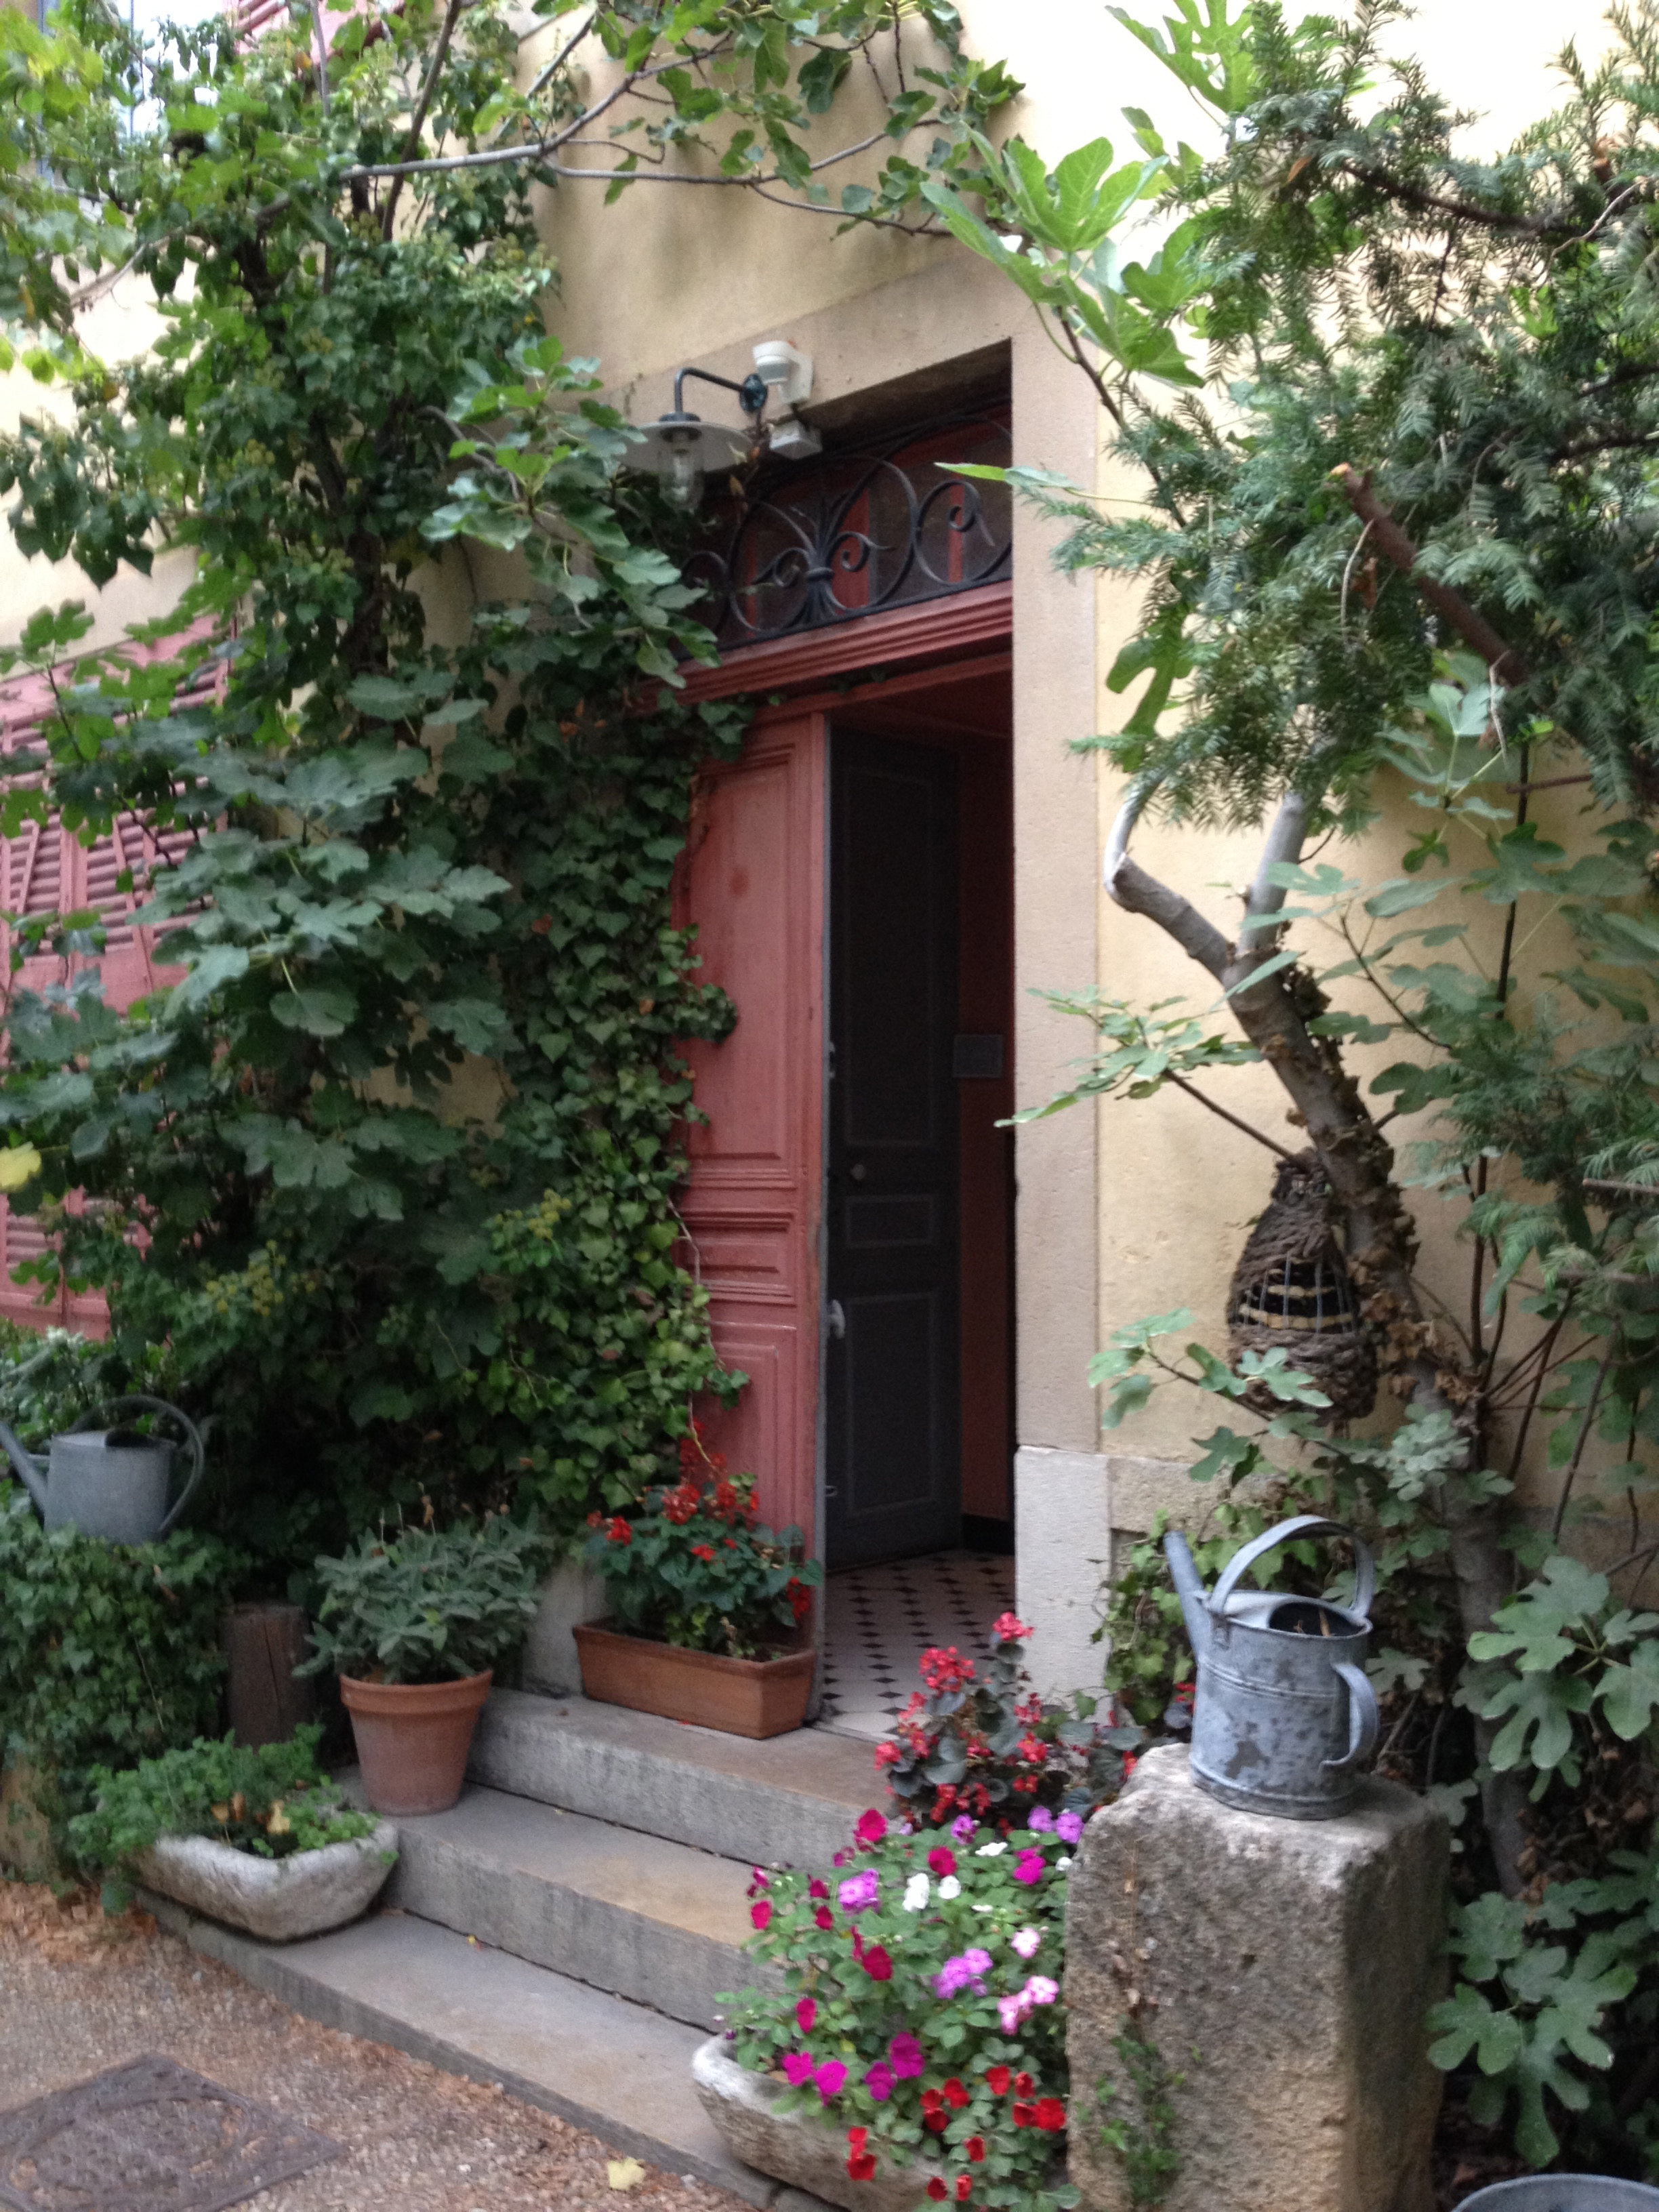 The Doorway To C�zanne's Studio In Aix En Provence The Studio And Gardens  Are Open